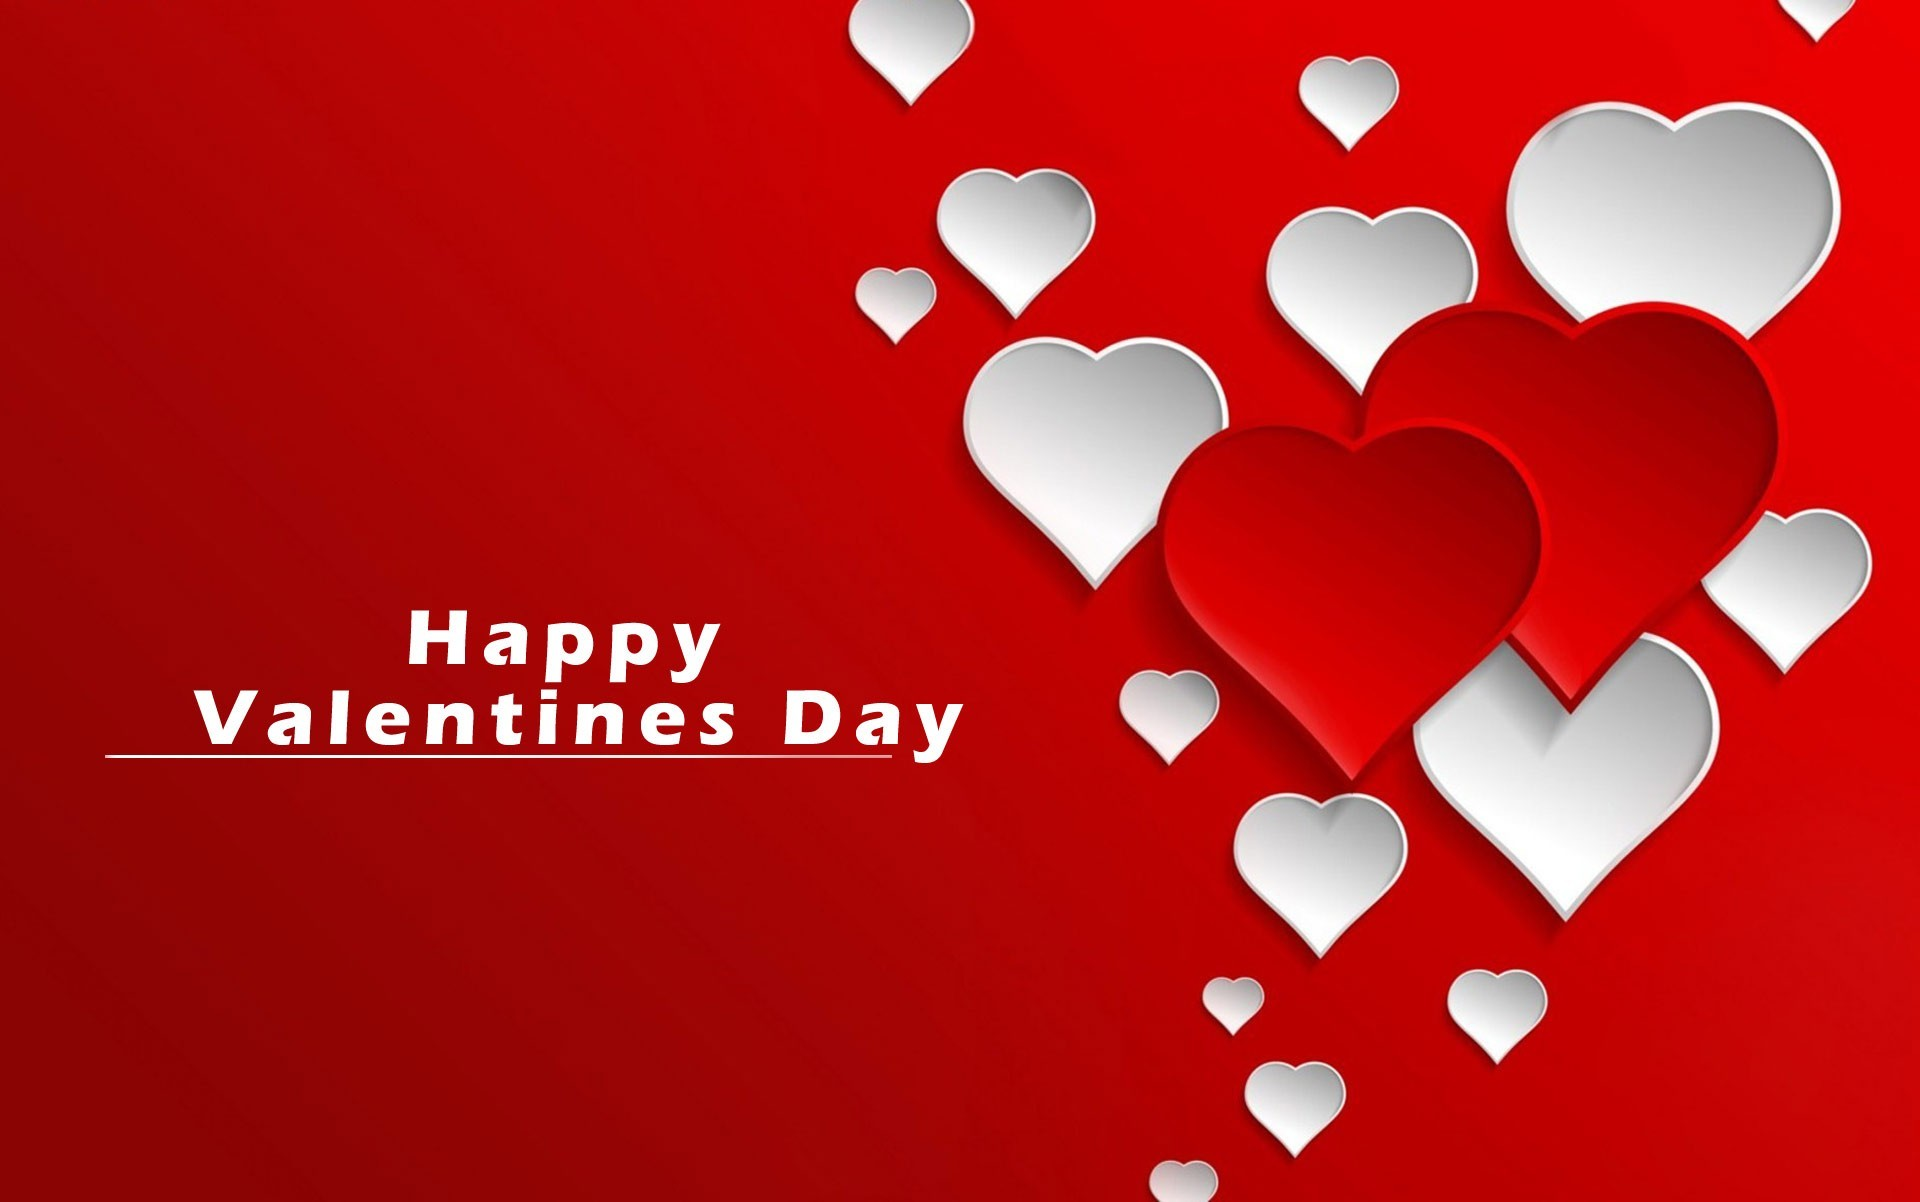 happy valentines day wallpapers (77+ images)